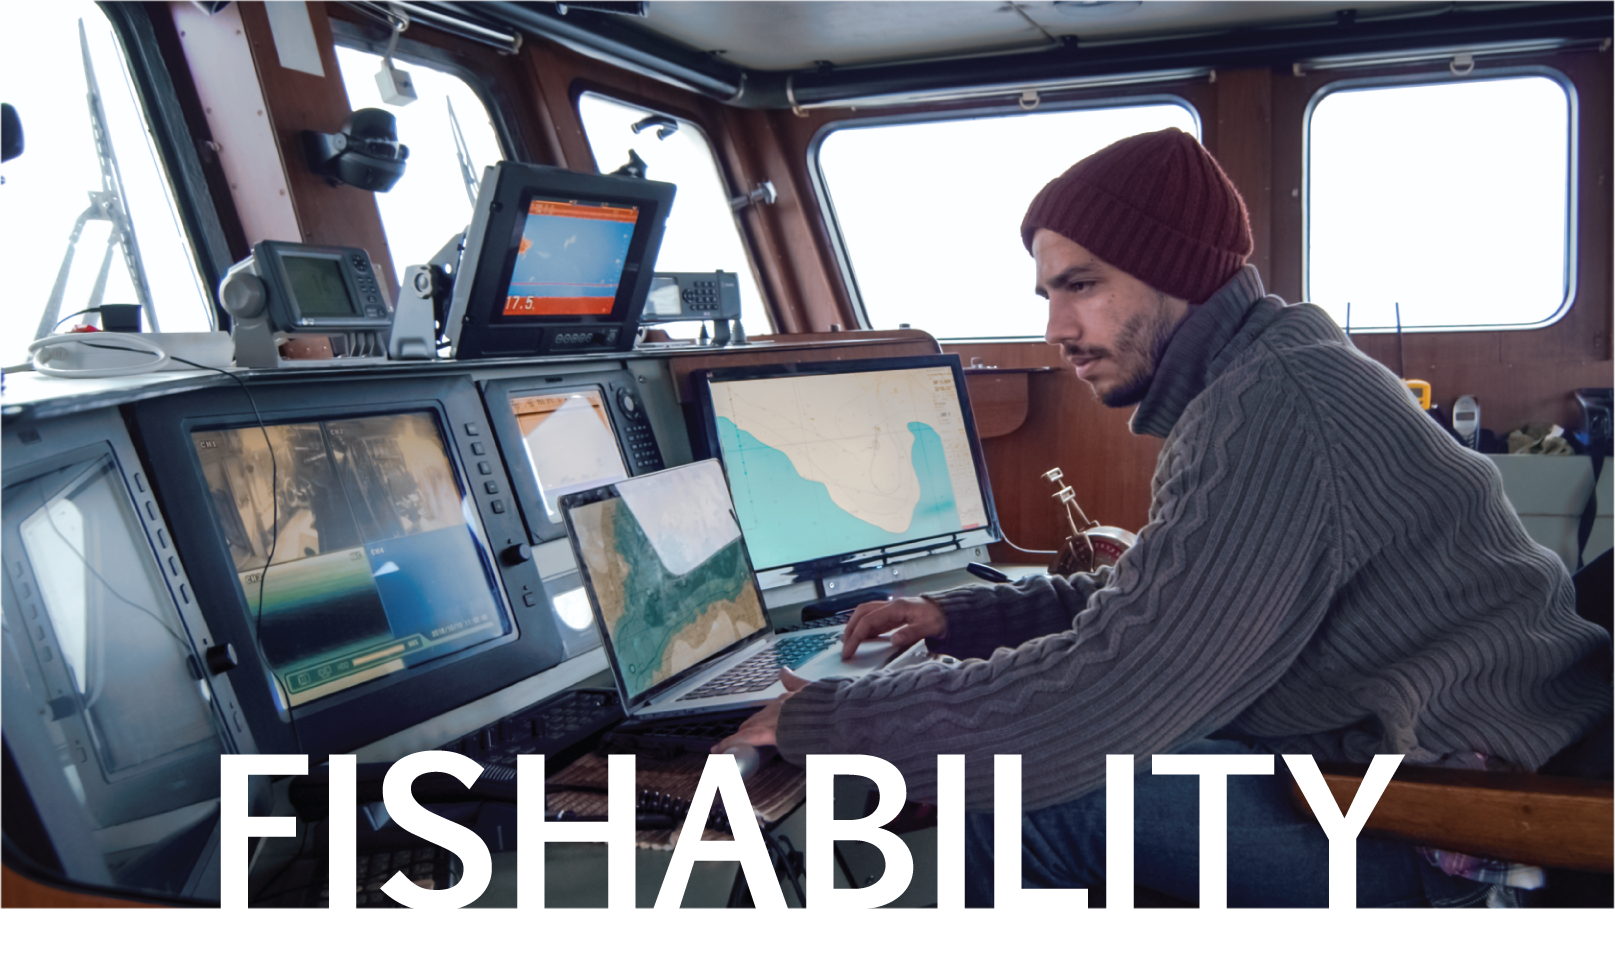 Man sitting in captains seat on commercial fishing boat with text fishability over image